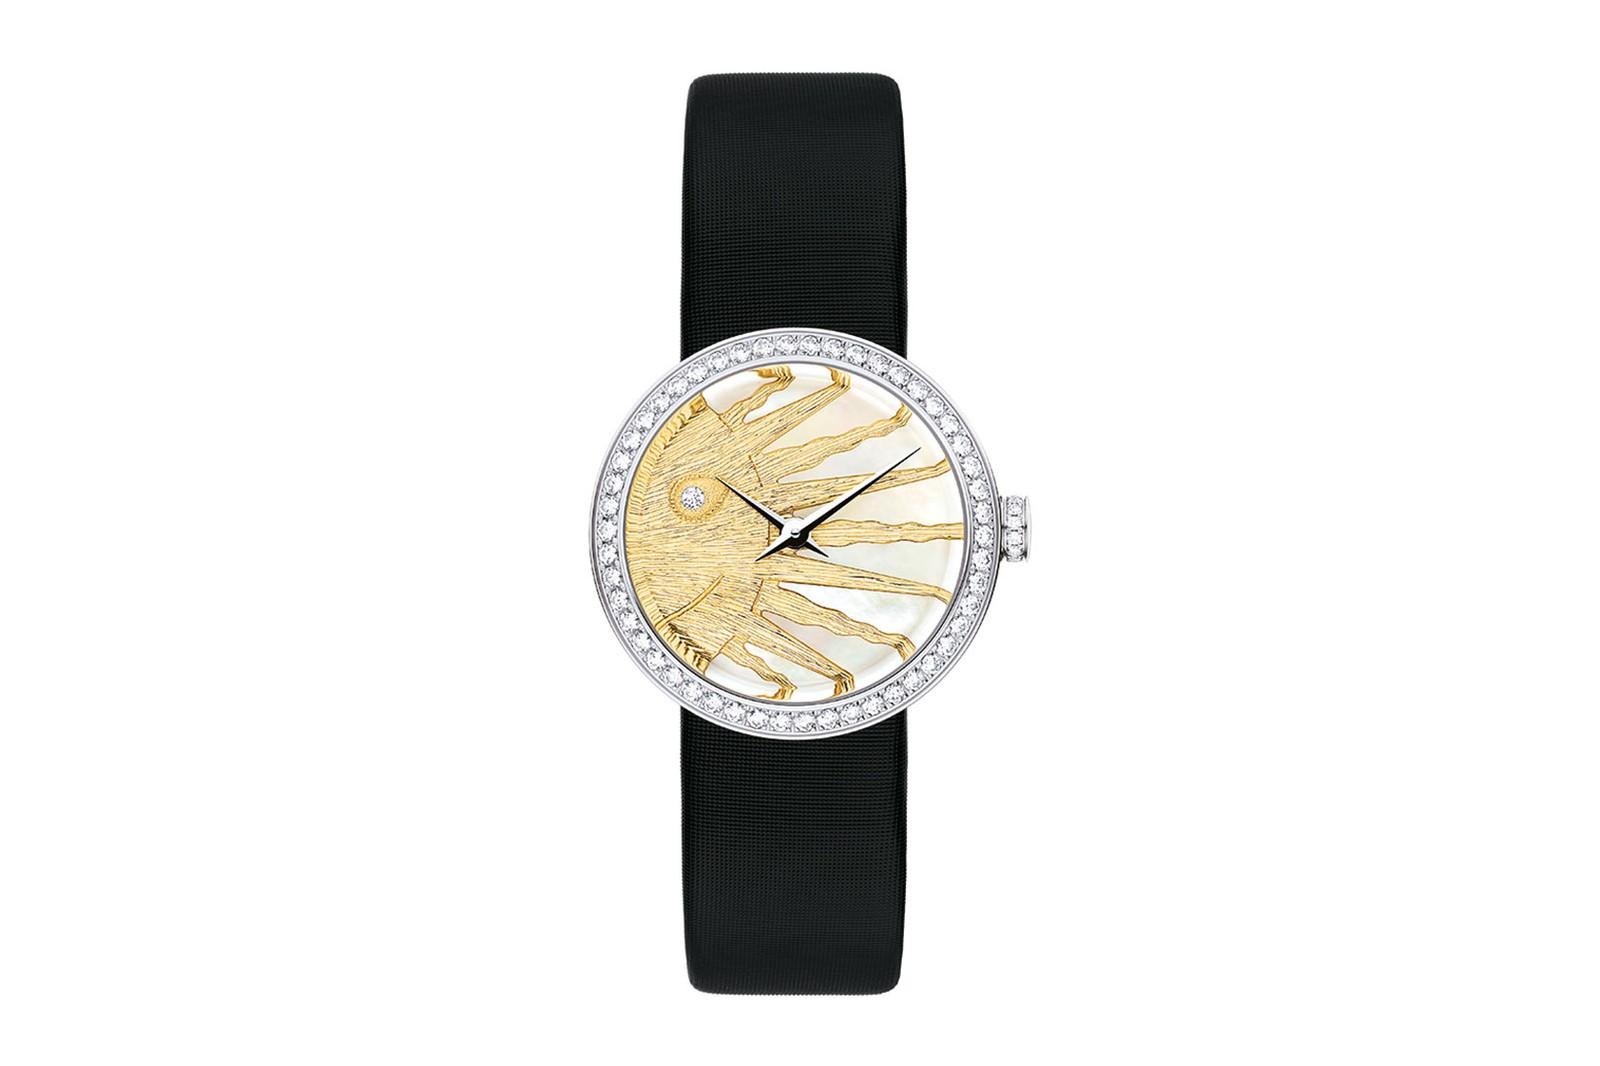 dior holiday christmas rose des vents watches la d de celeste satine accessories tigers eye mother of pearl